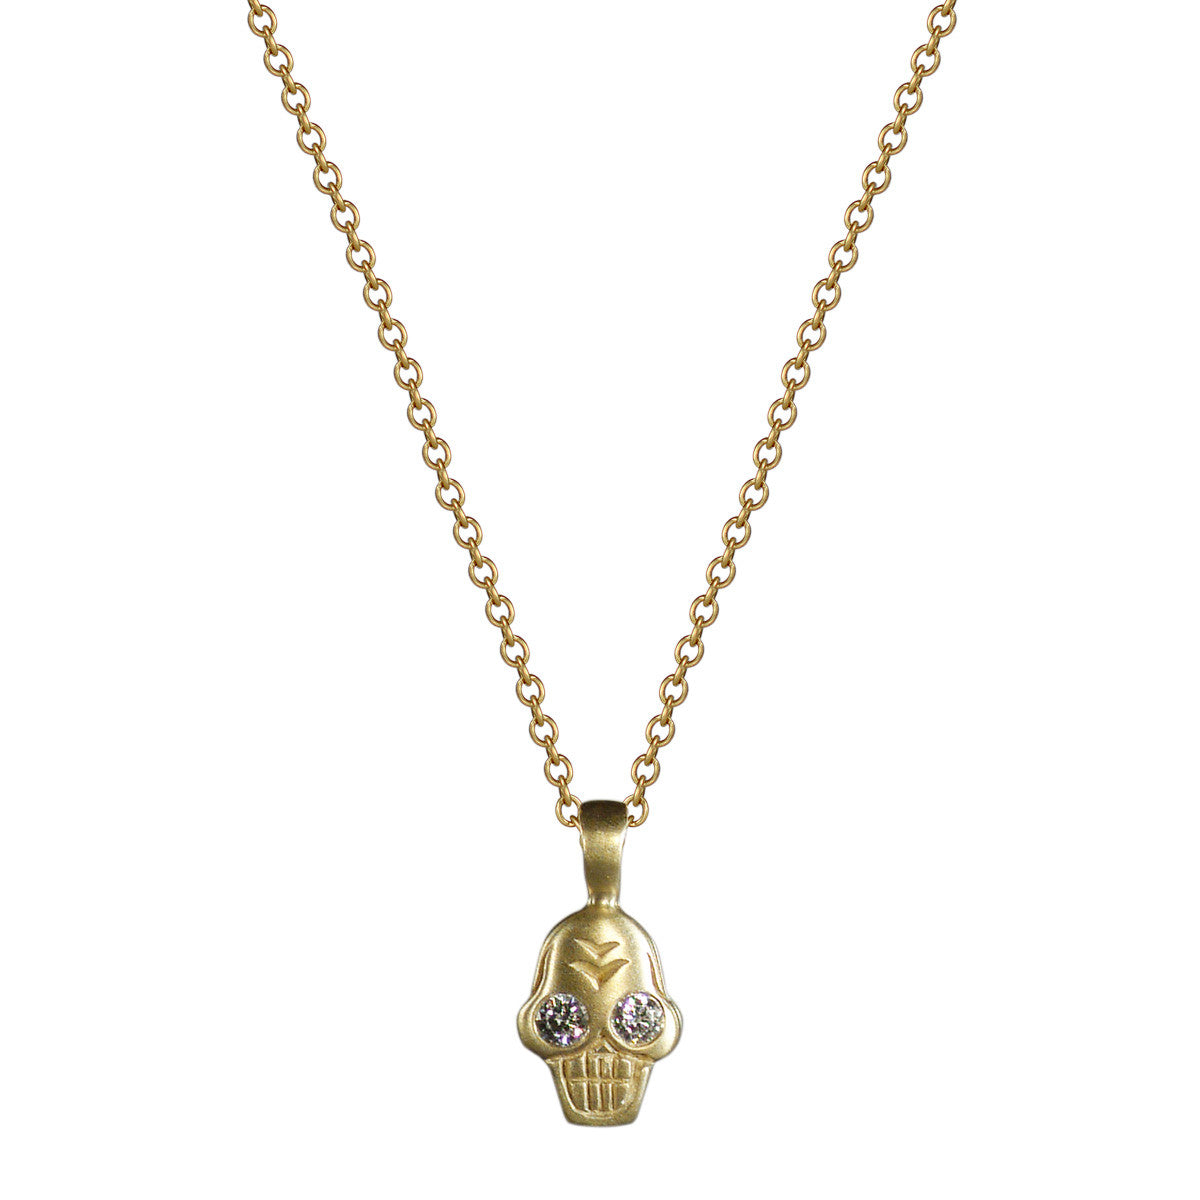 18K Gold Tiny Skull Charm Pendant with Diamonds